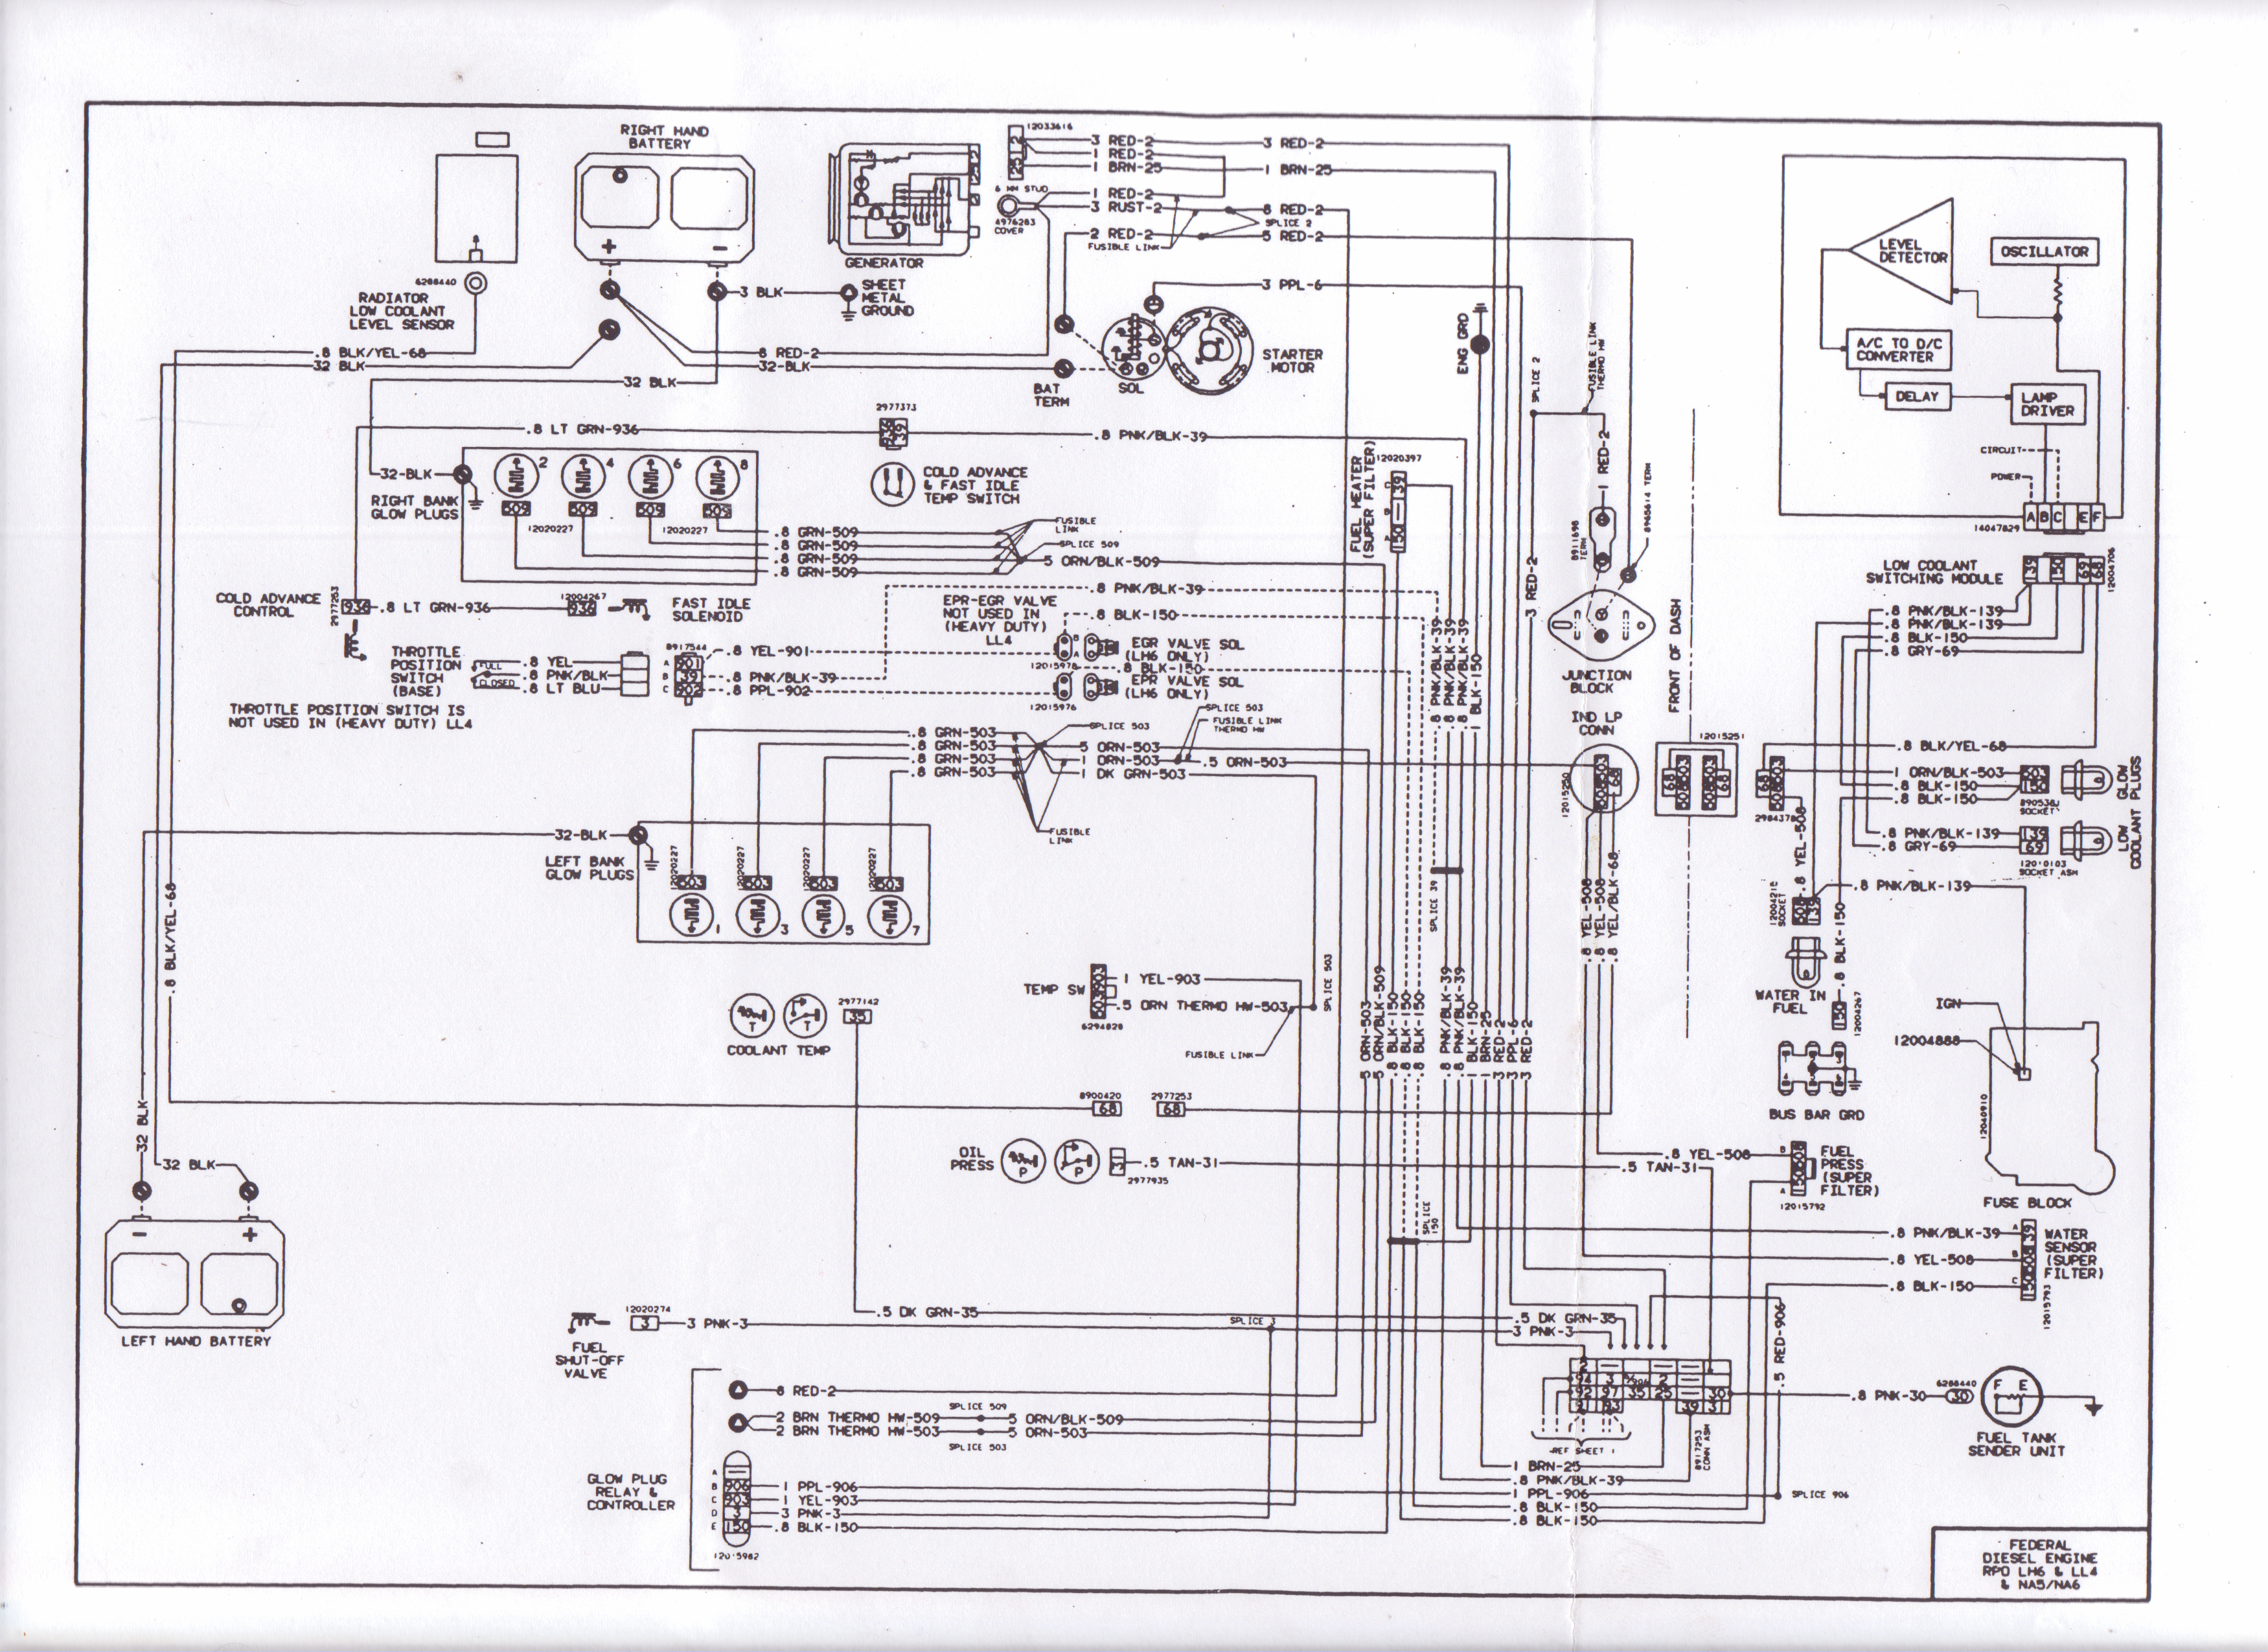 mack truck wiring diagram 2000 great engine wiring diagram schematic • mack truck wiring diagram 2000 images gallery